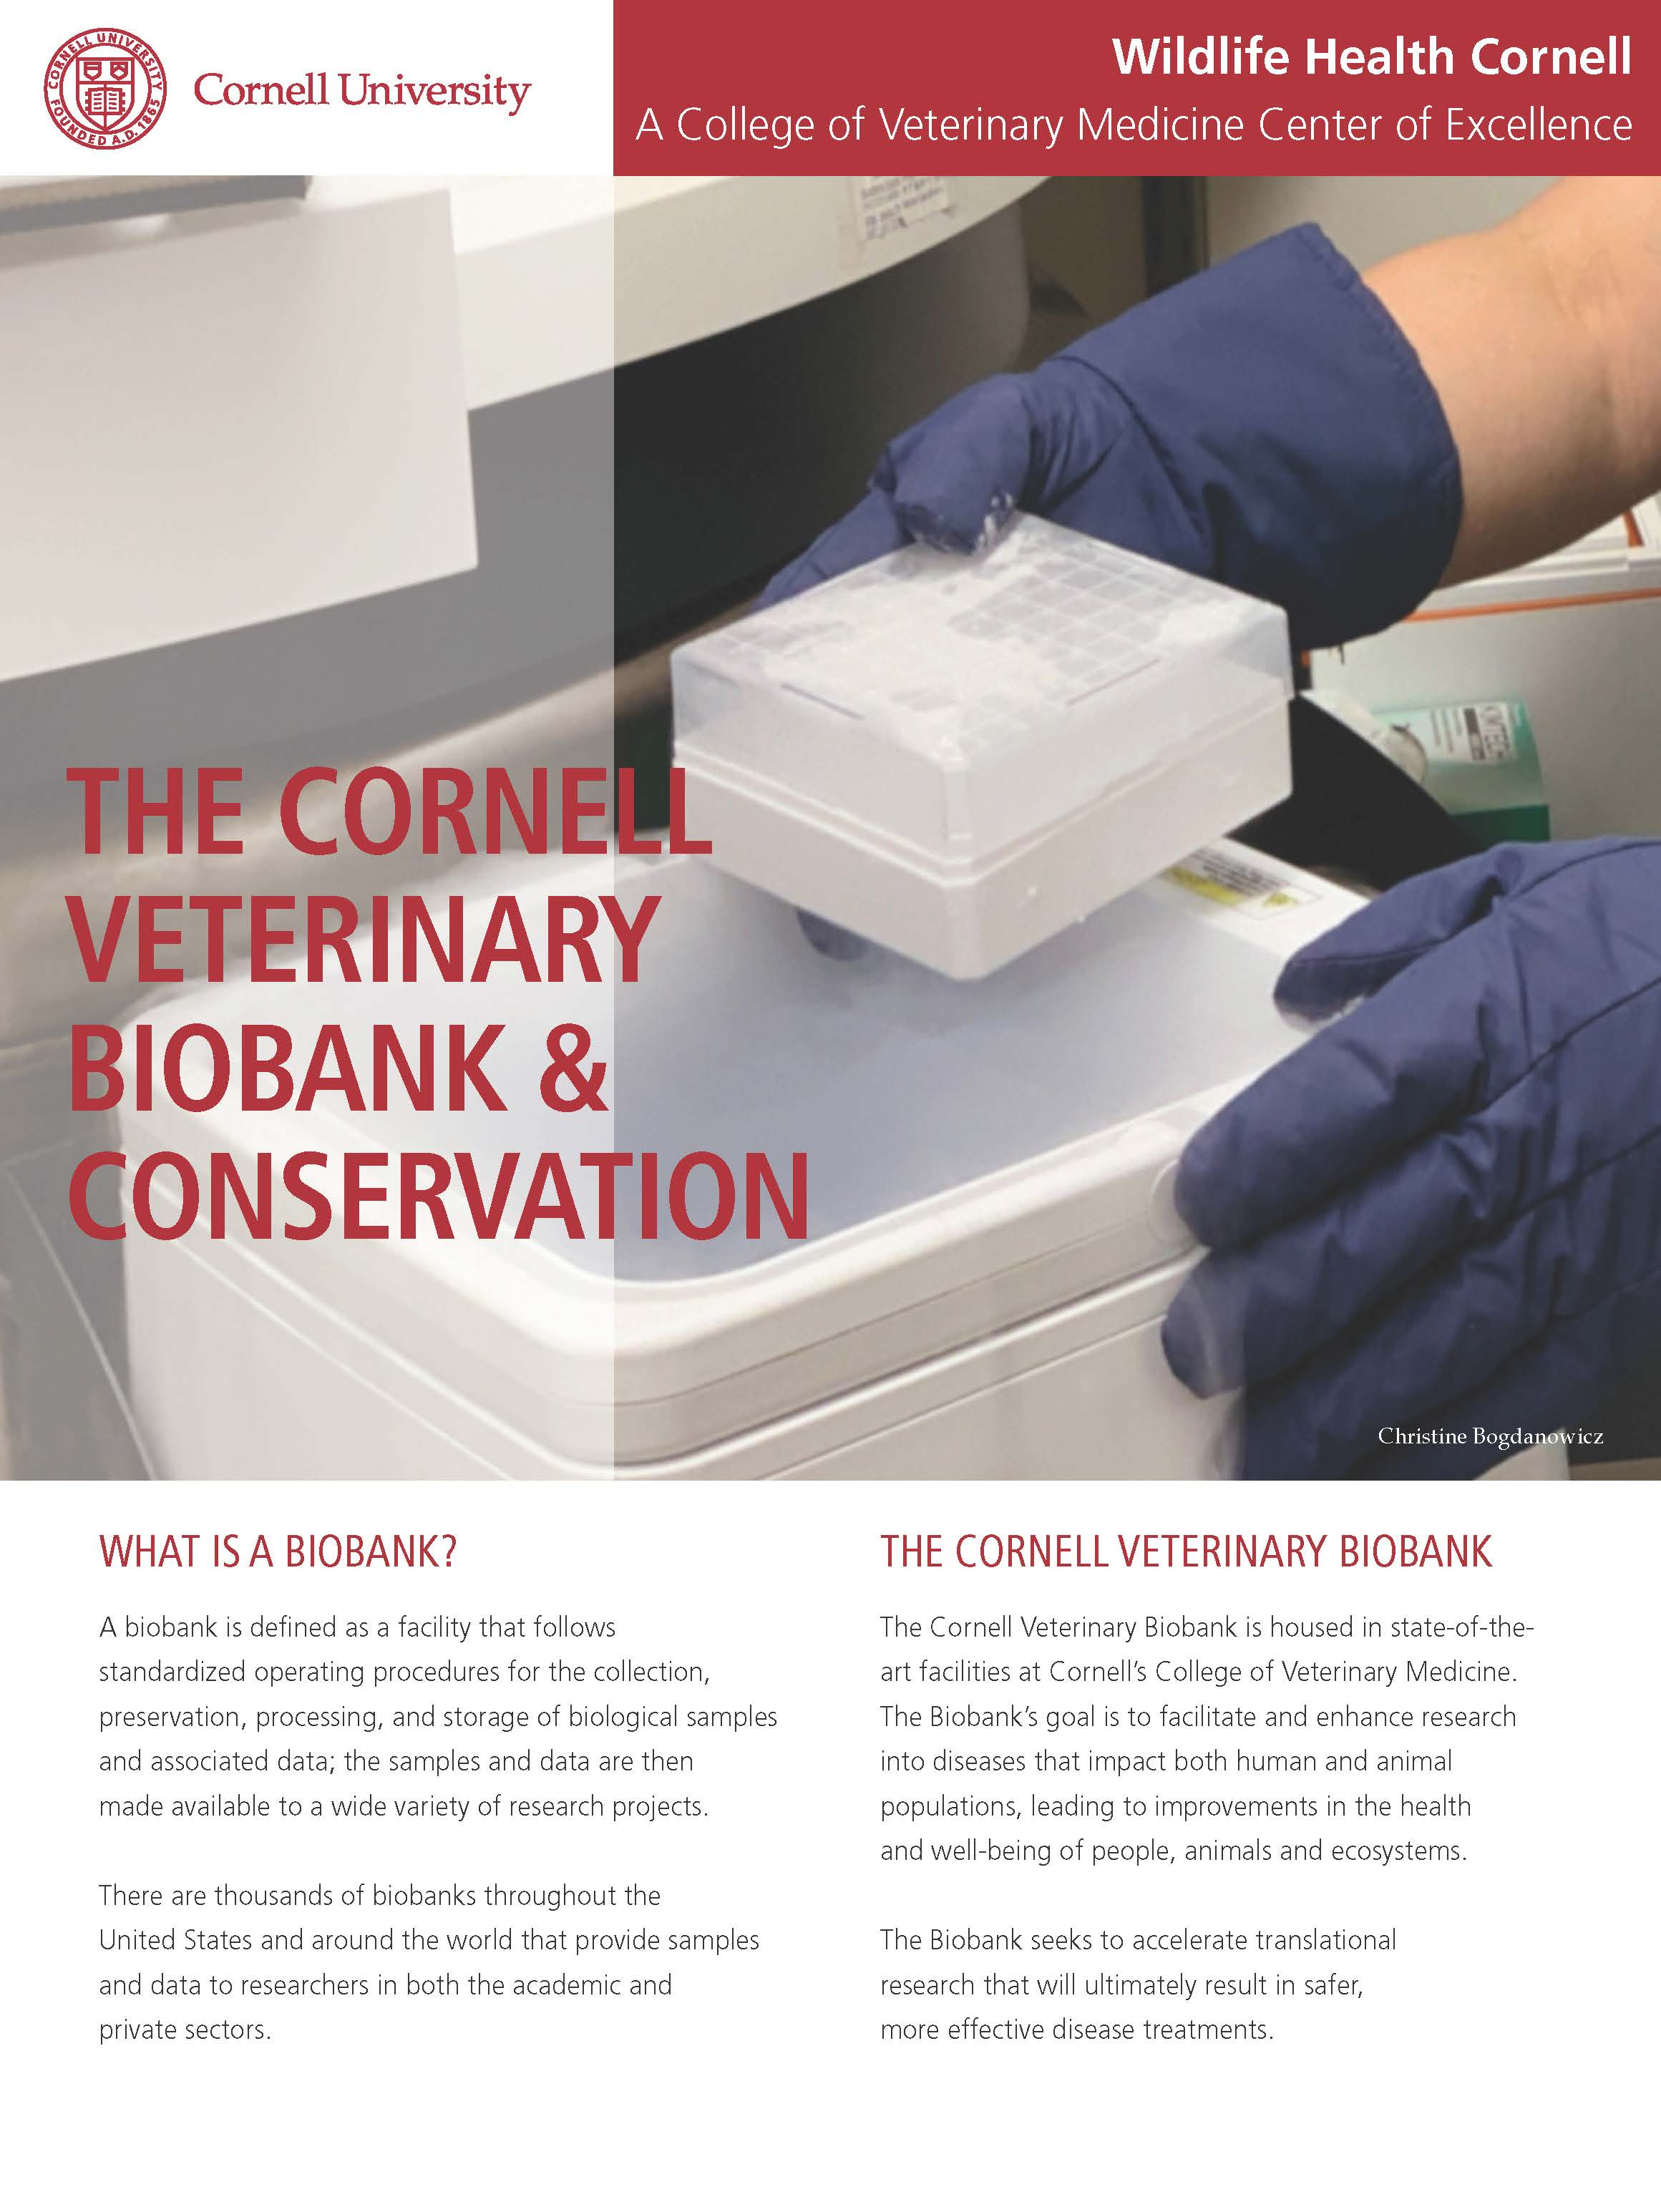 Biobank and conservation wildlife article cover